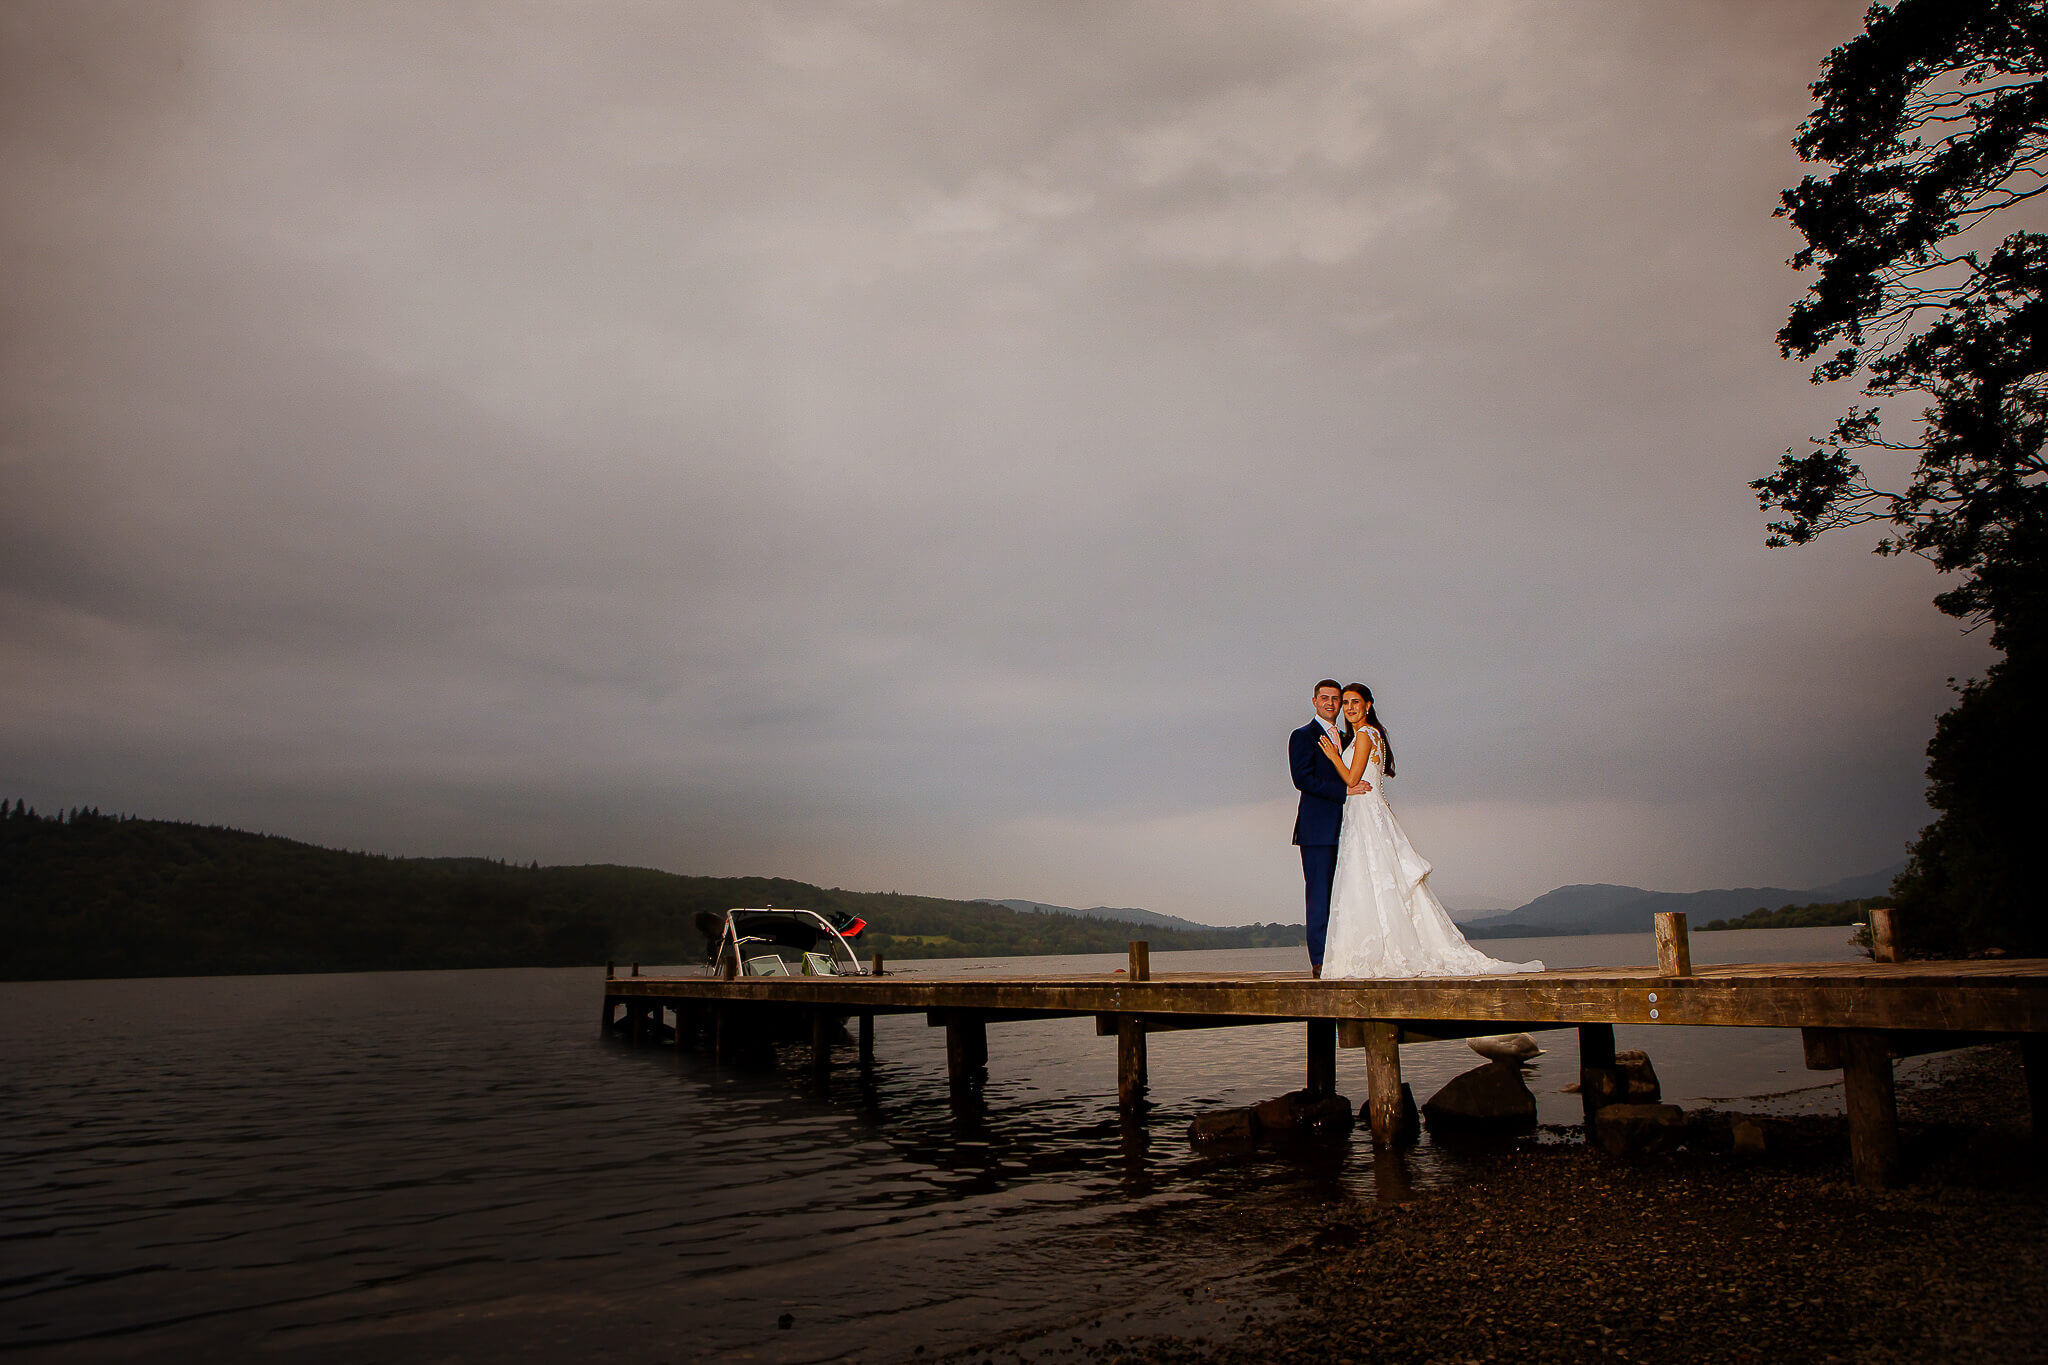 best-wedding-photographers-uk-europe-stanbury-photography-148